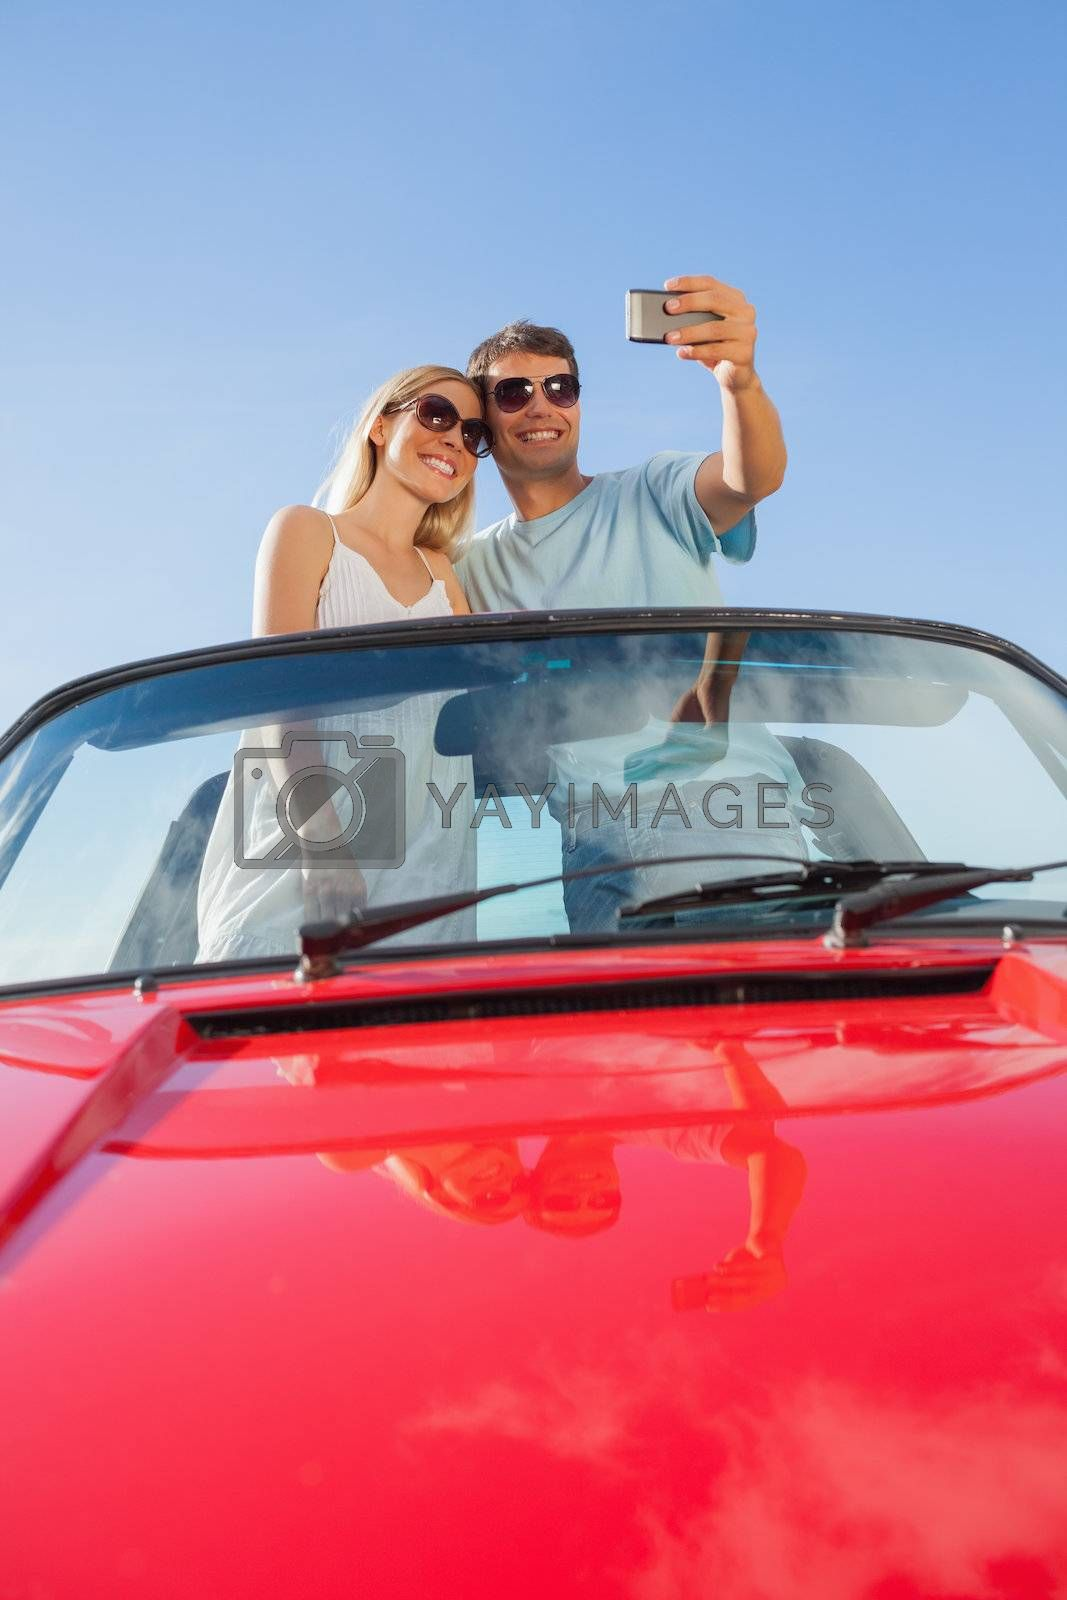 Smiling couple standing in red cabriolet taking picture by Wavebreakmedia